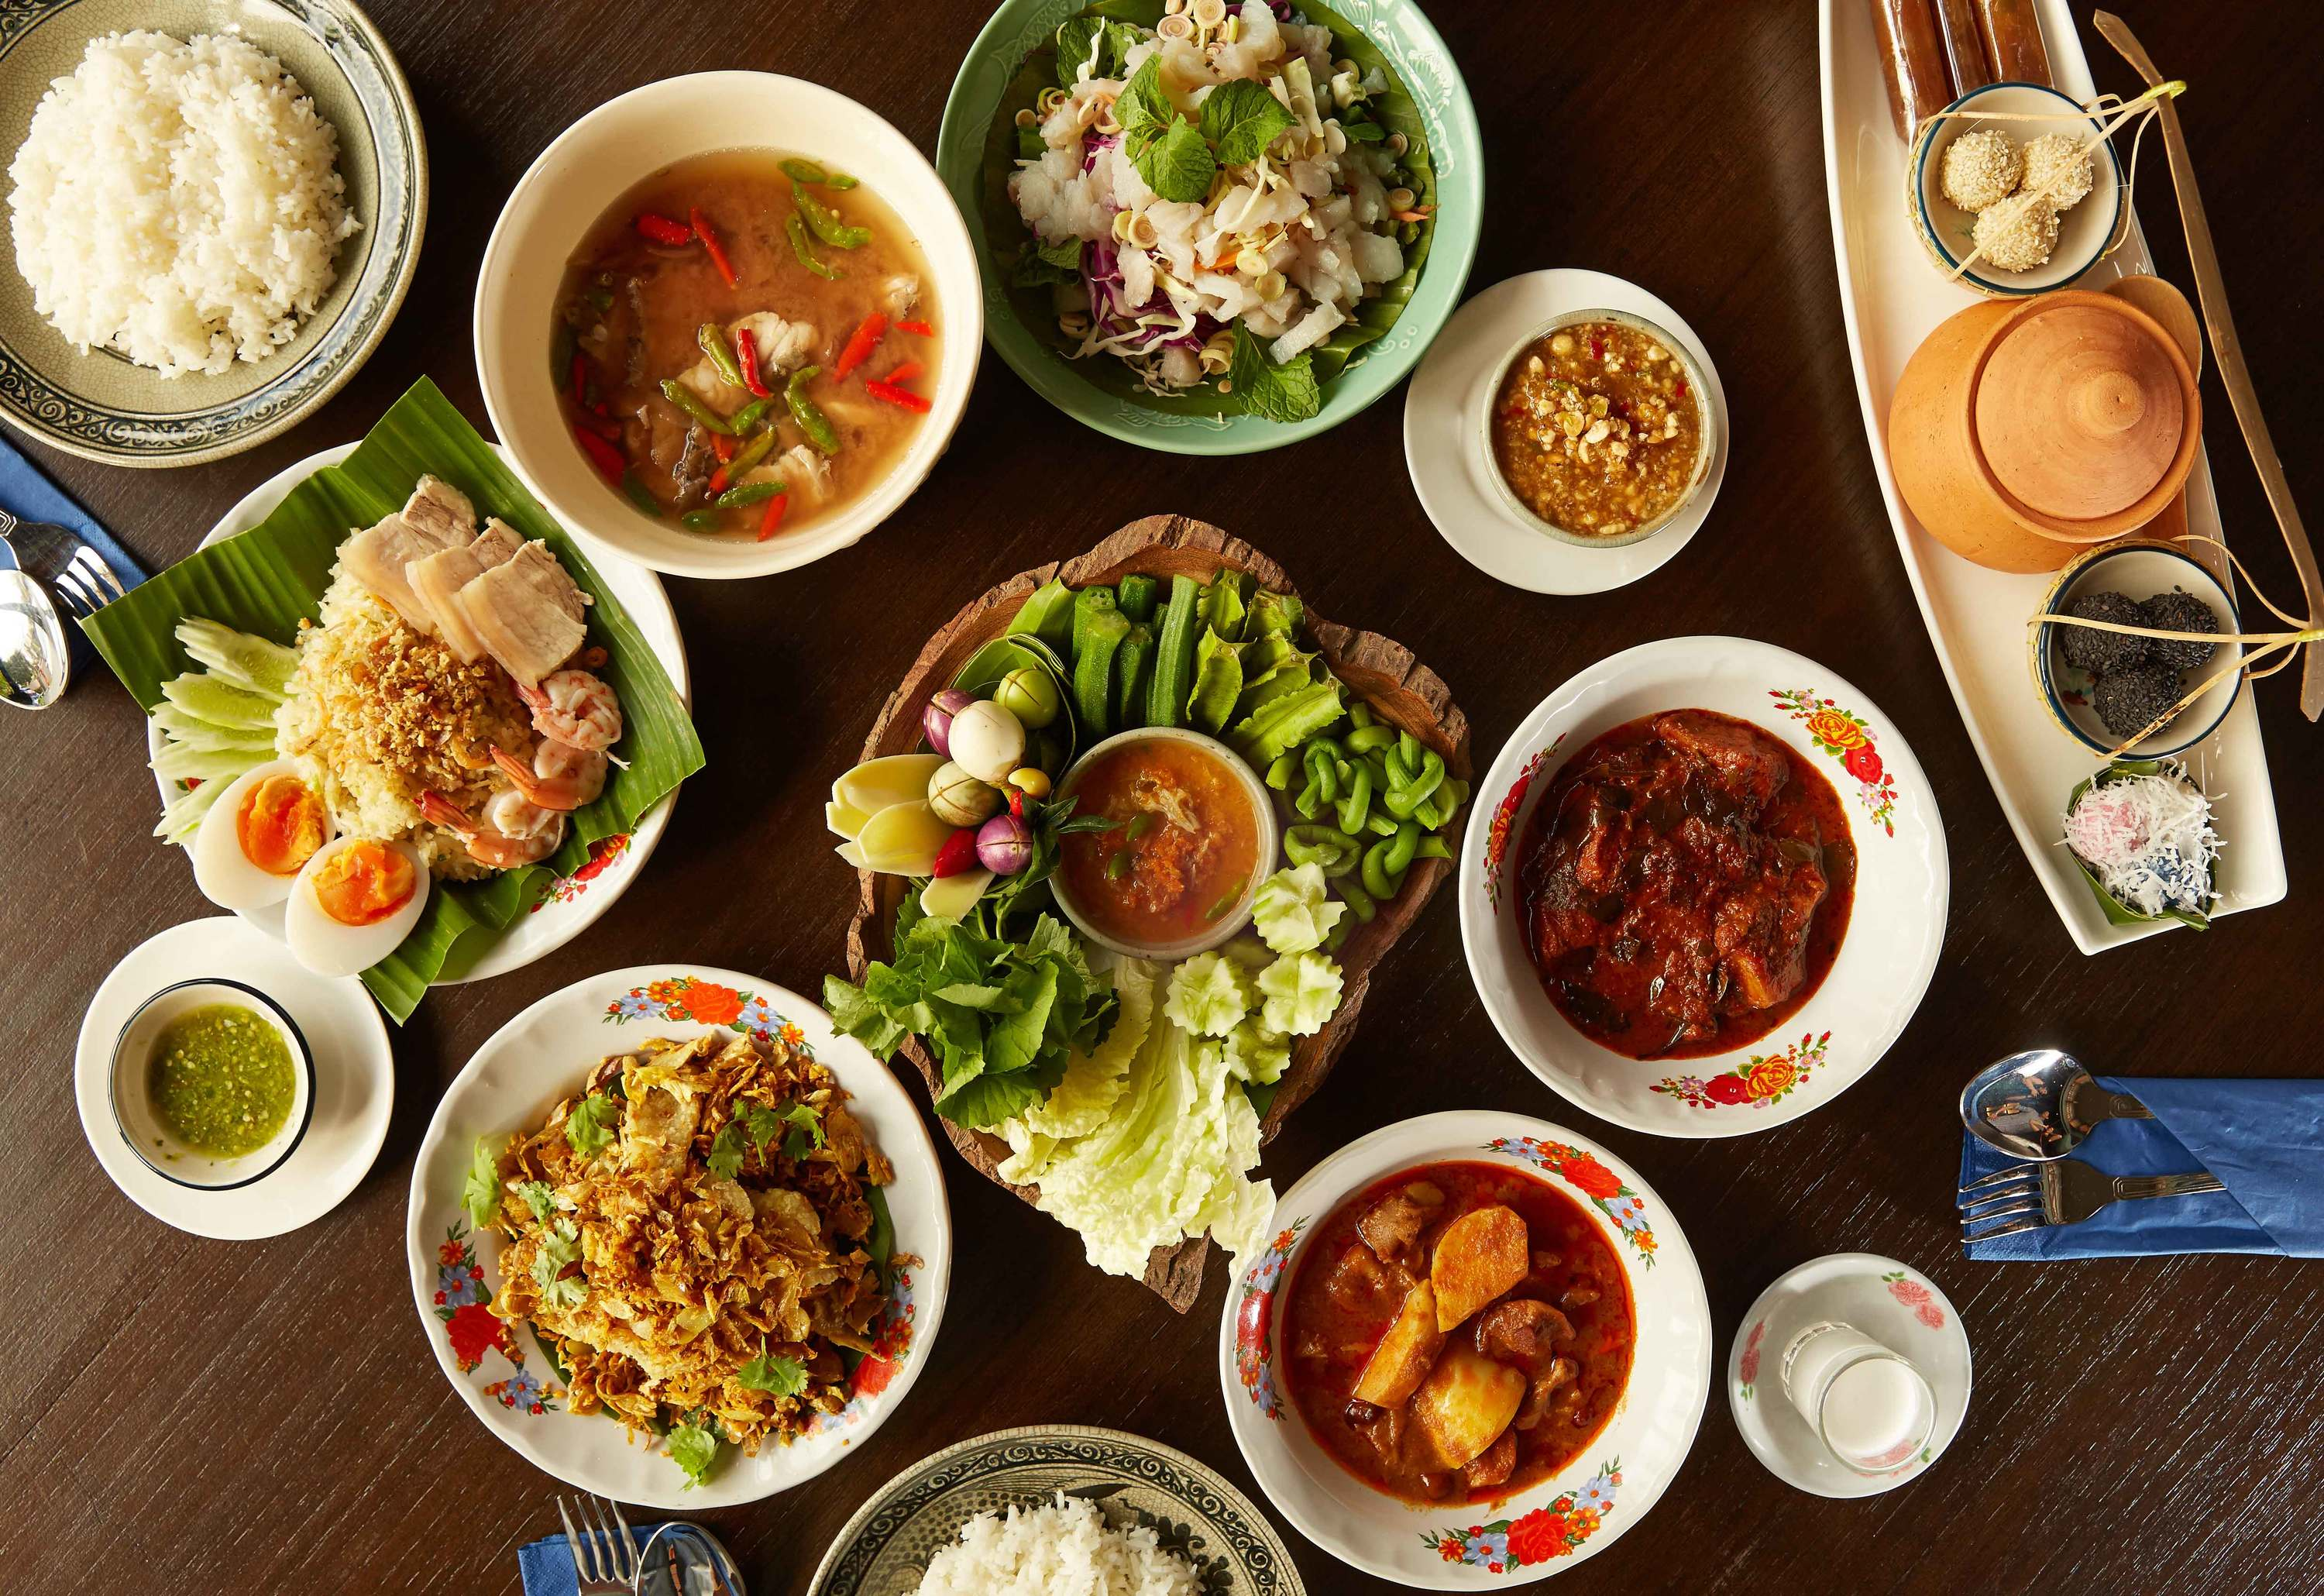 Sri Trat restaurant showcases the best of trat